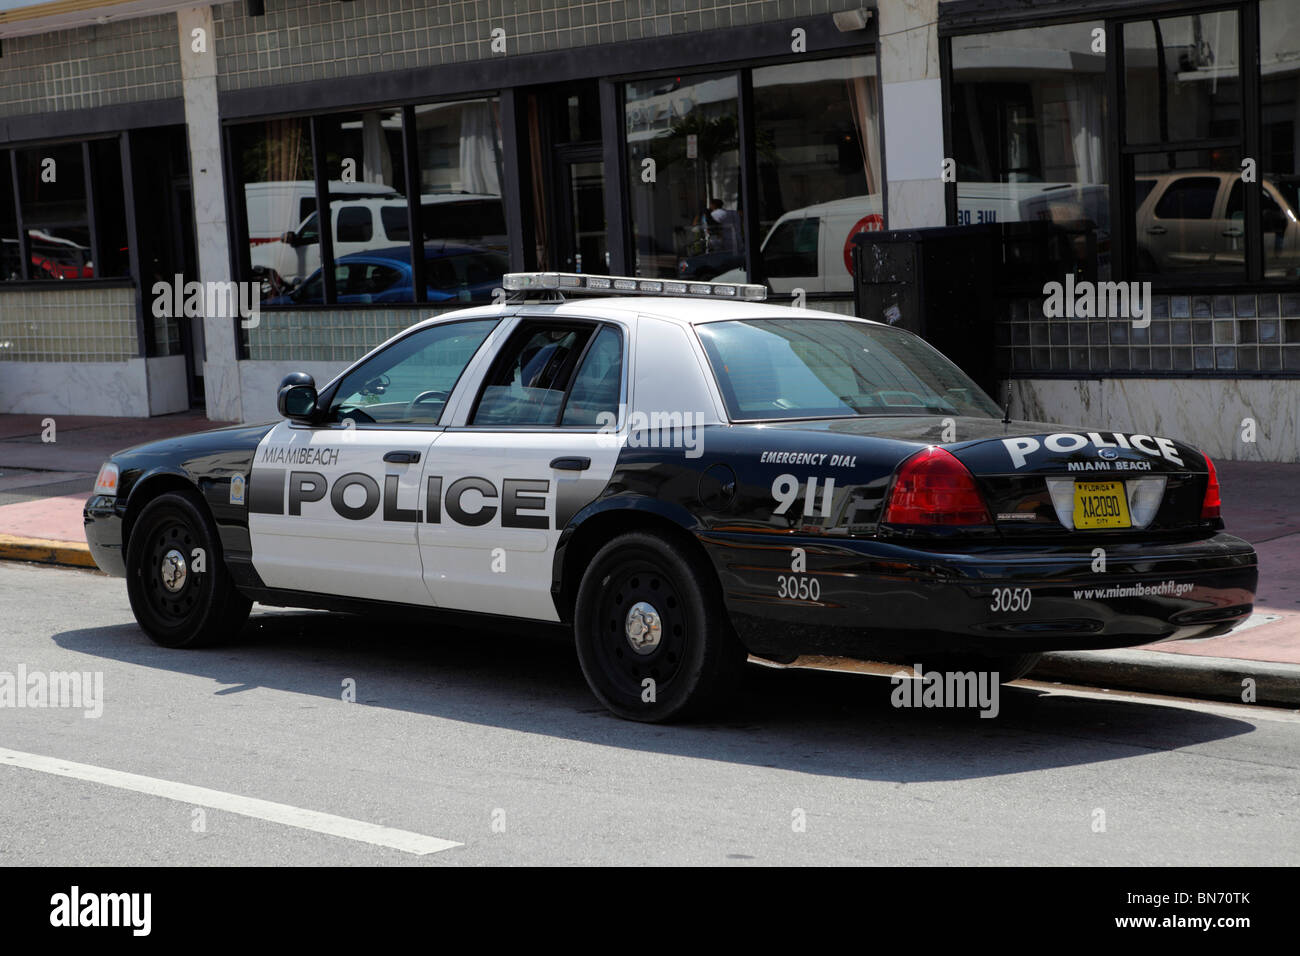 2009 ford crown victoria police interceptor in white drivers side profile b90r7h rm miami beach police car stock image